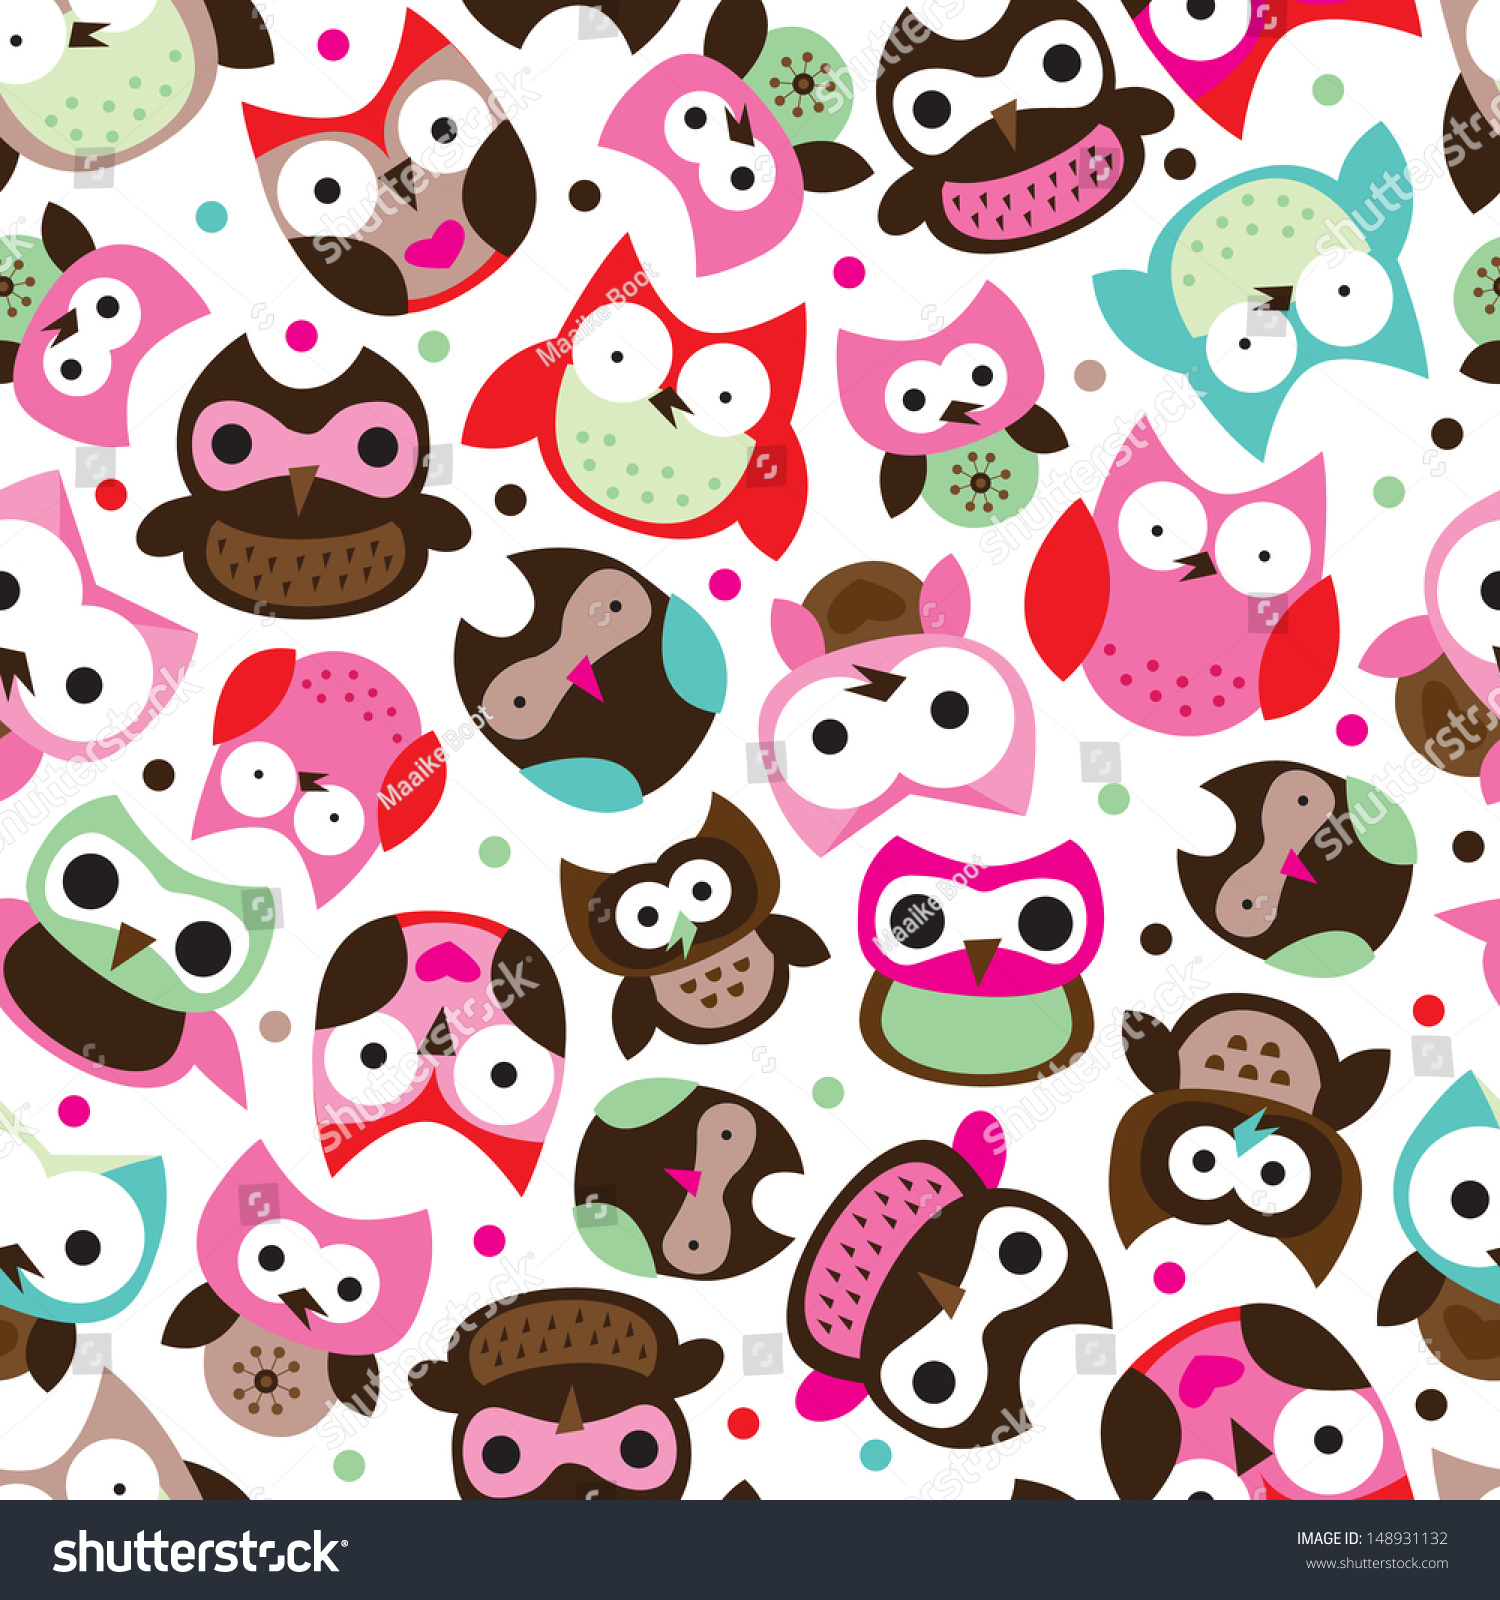 Free Owl Wallpapers: Seamless Colorful Pink Blue Owl Background Stock Vector